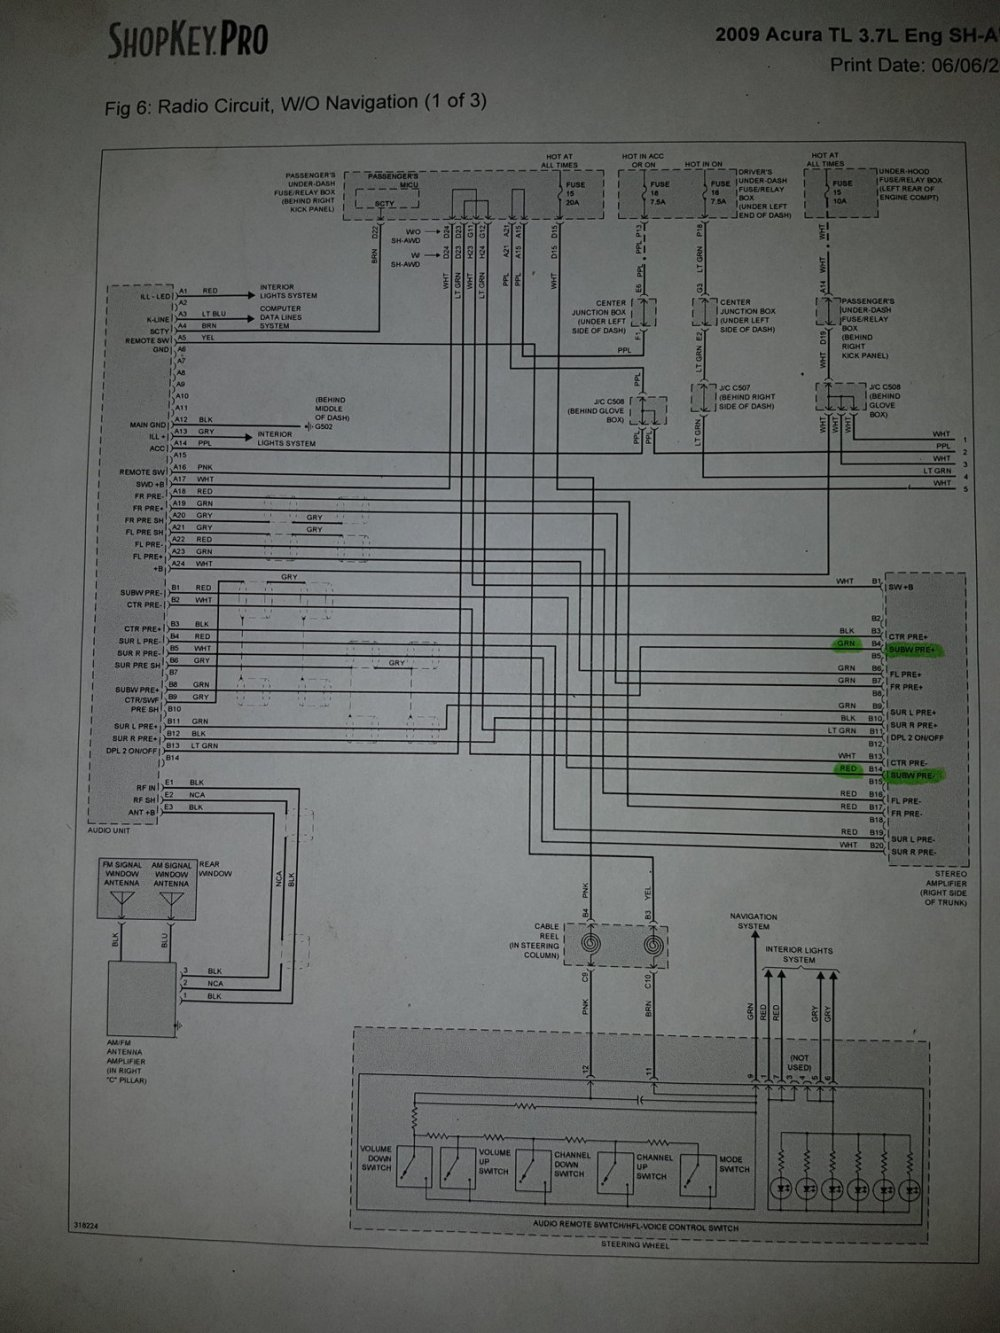 medium resolution of radio wiring diagram 1 for 2009 acura tl sh awd non tech package